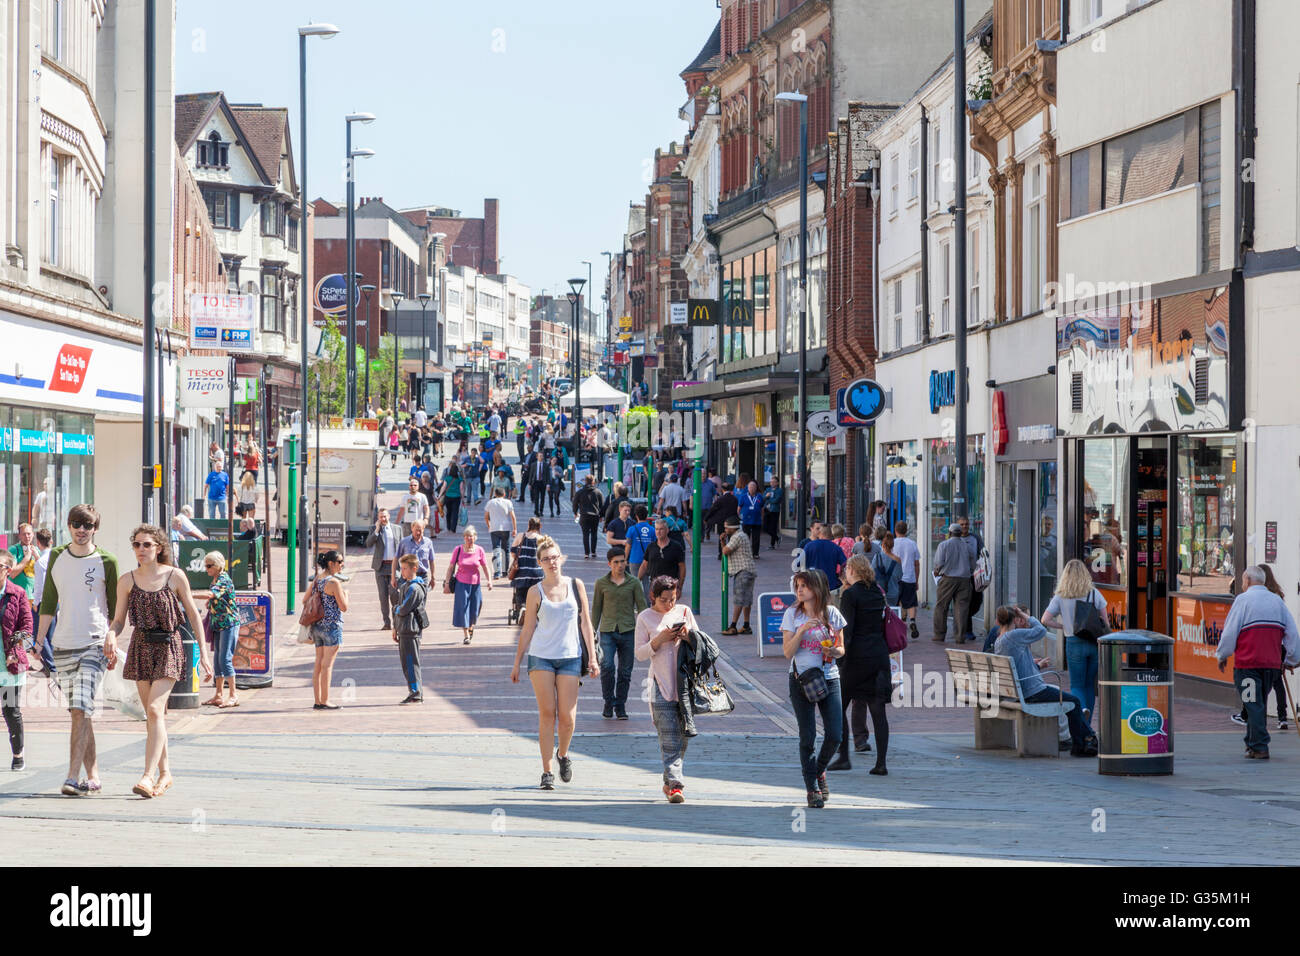 People shopping, St Peter's Street, Derby city centre, England, UK - Stock Image